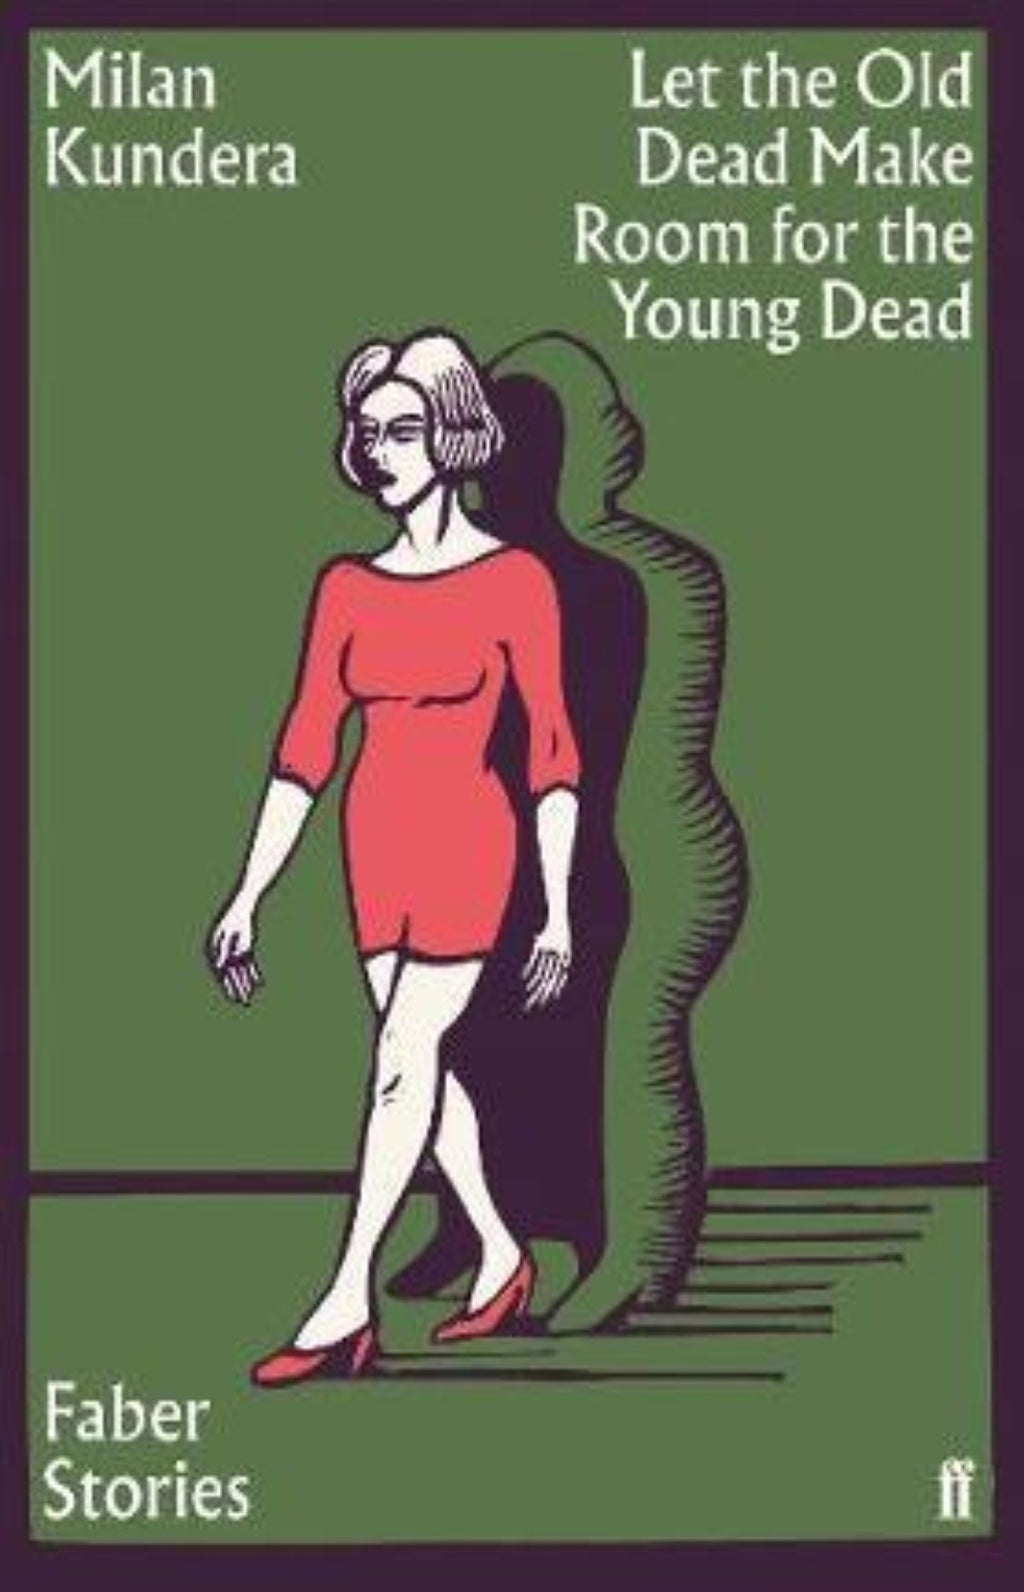 Let the Old Dead Make Room for the Young Dead : Faber Stories